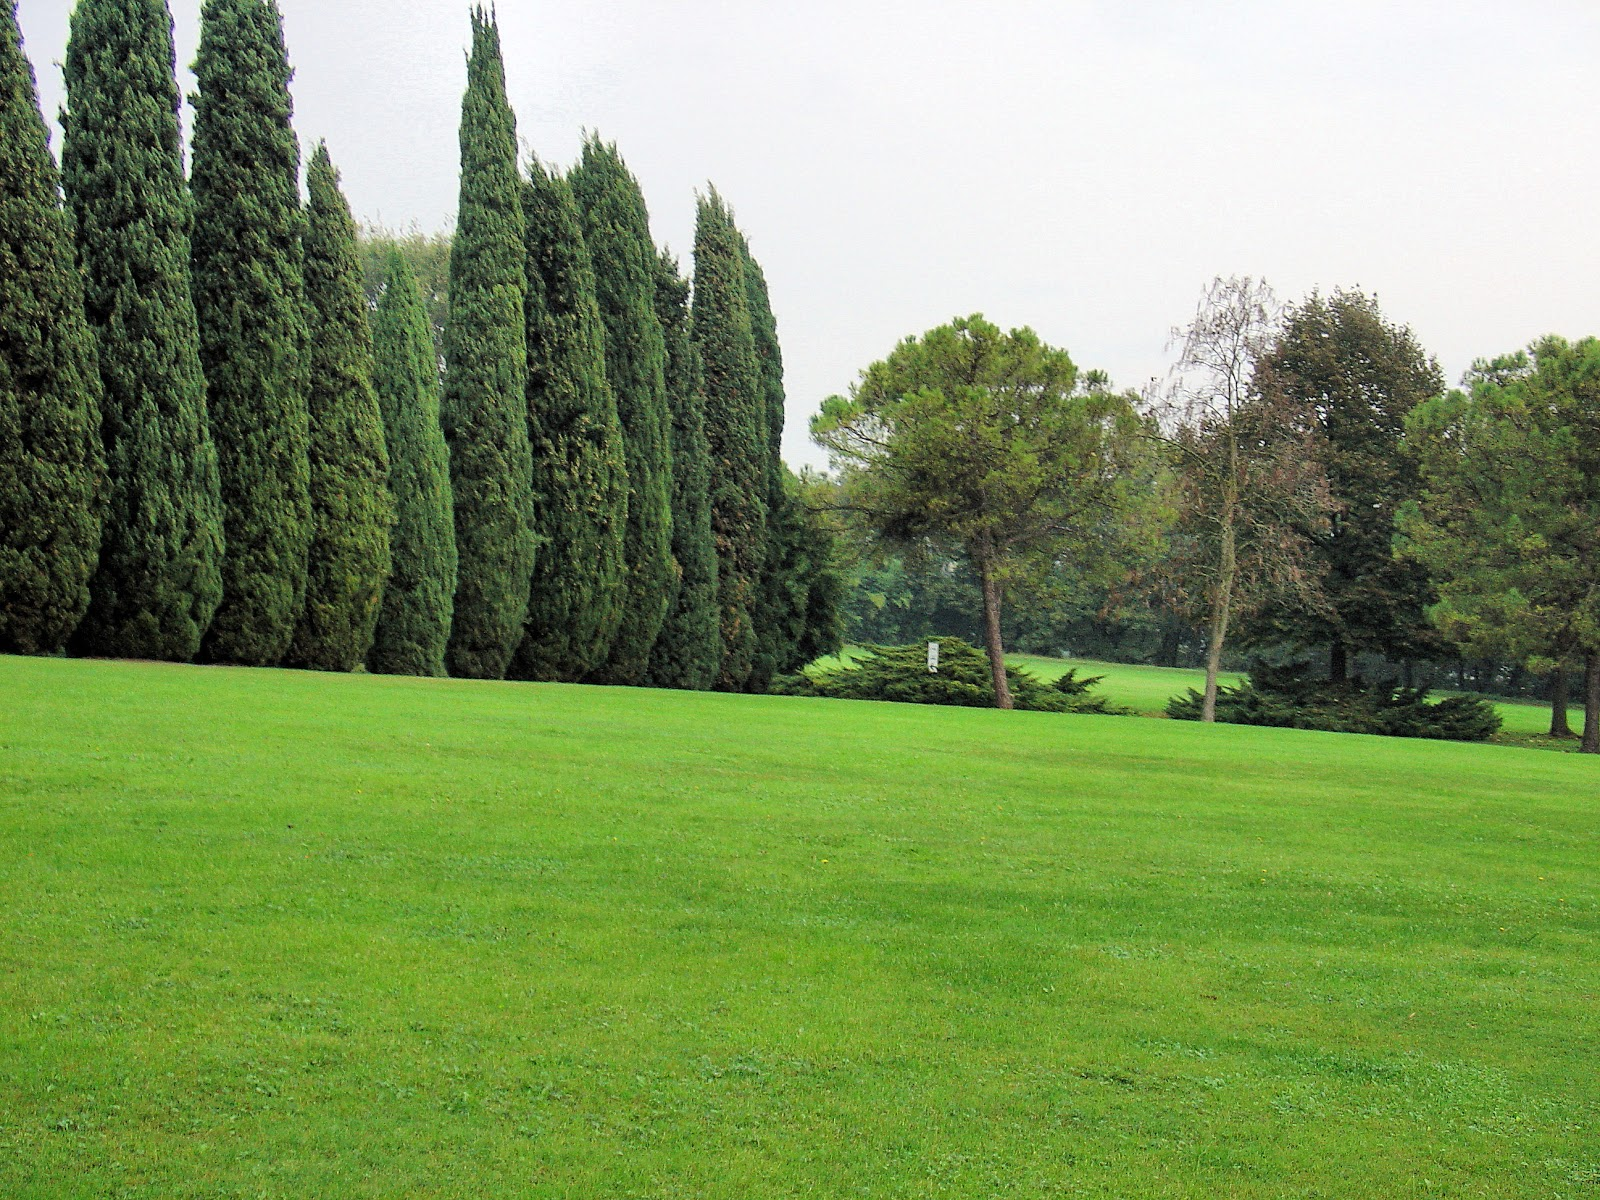 The Great Lawn at Parco Sigurtà Giardino.